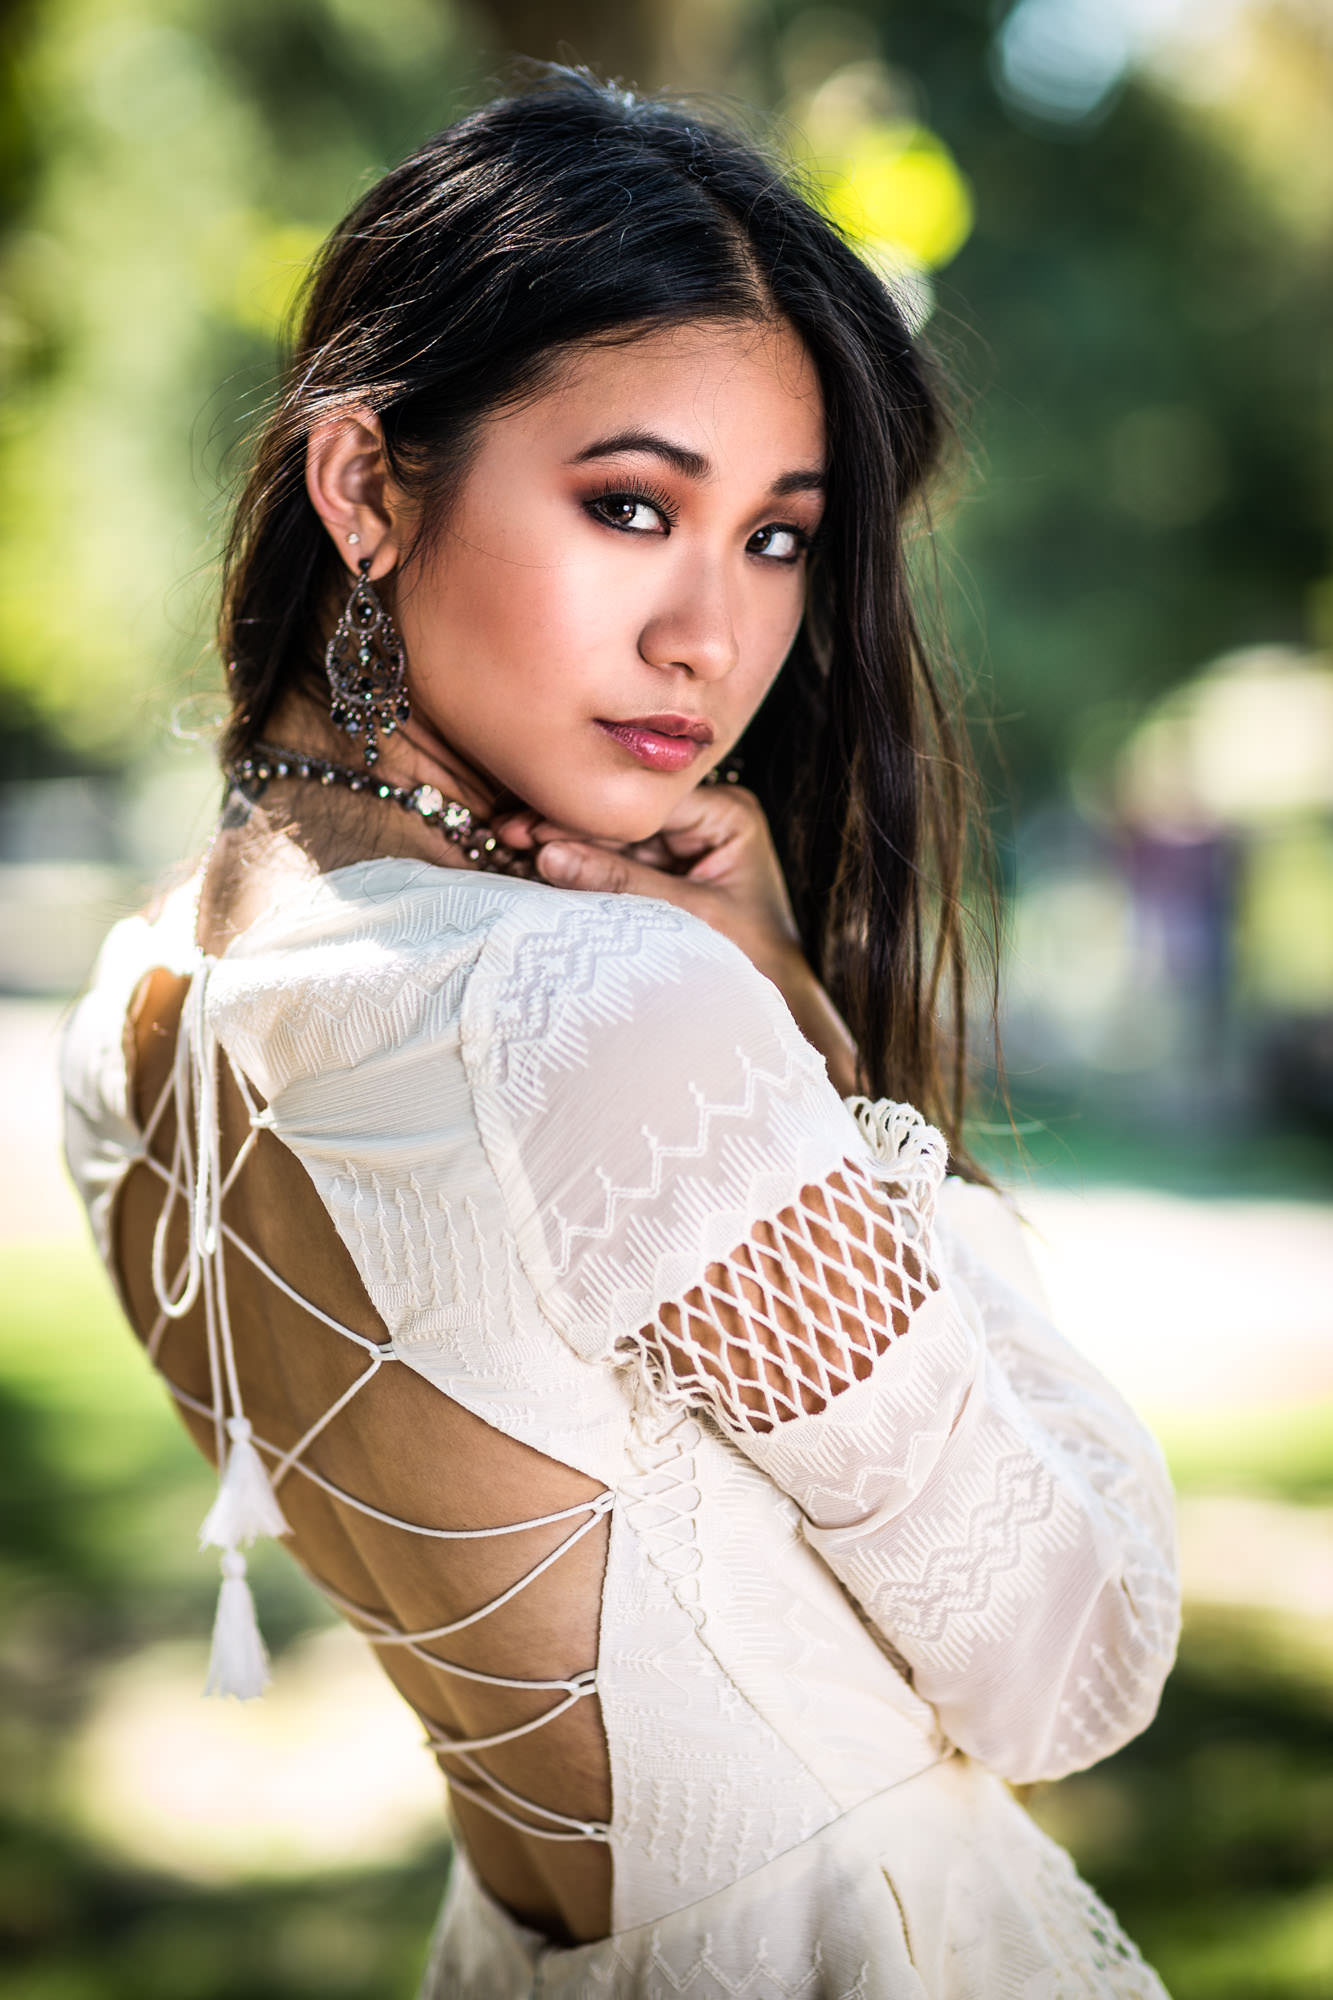 Beautiful Asian lady wearing elegant dress